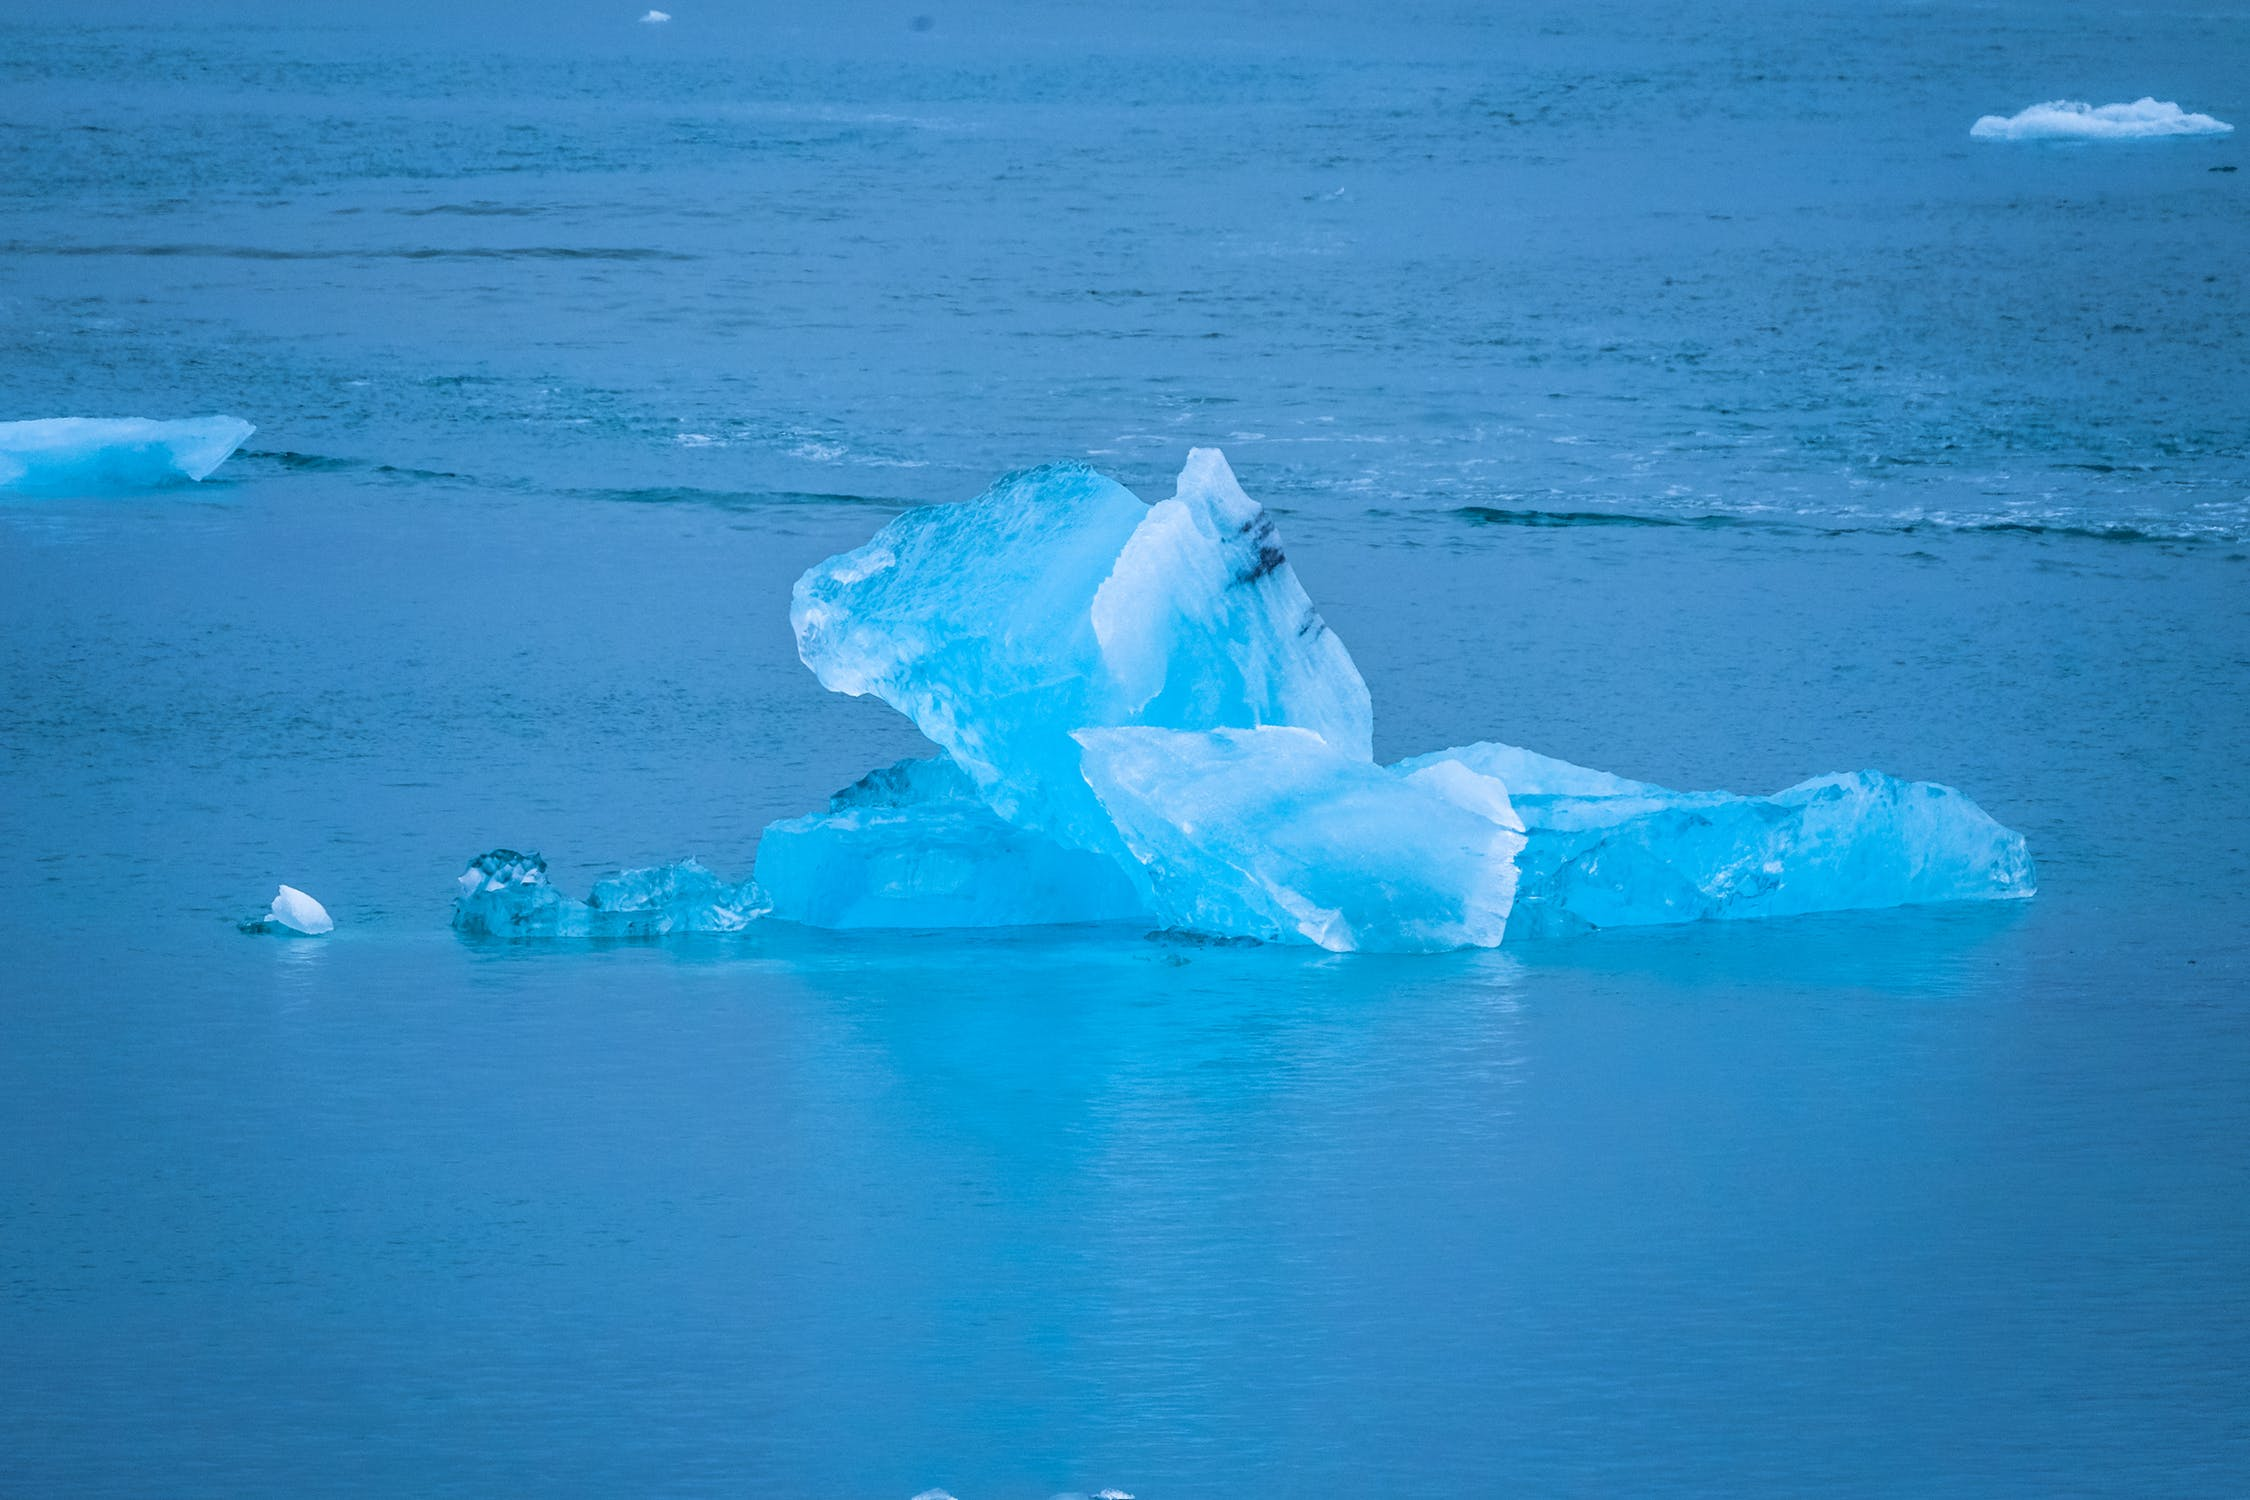 small blue iceberg floating in water